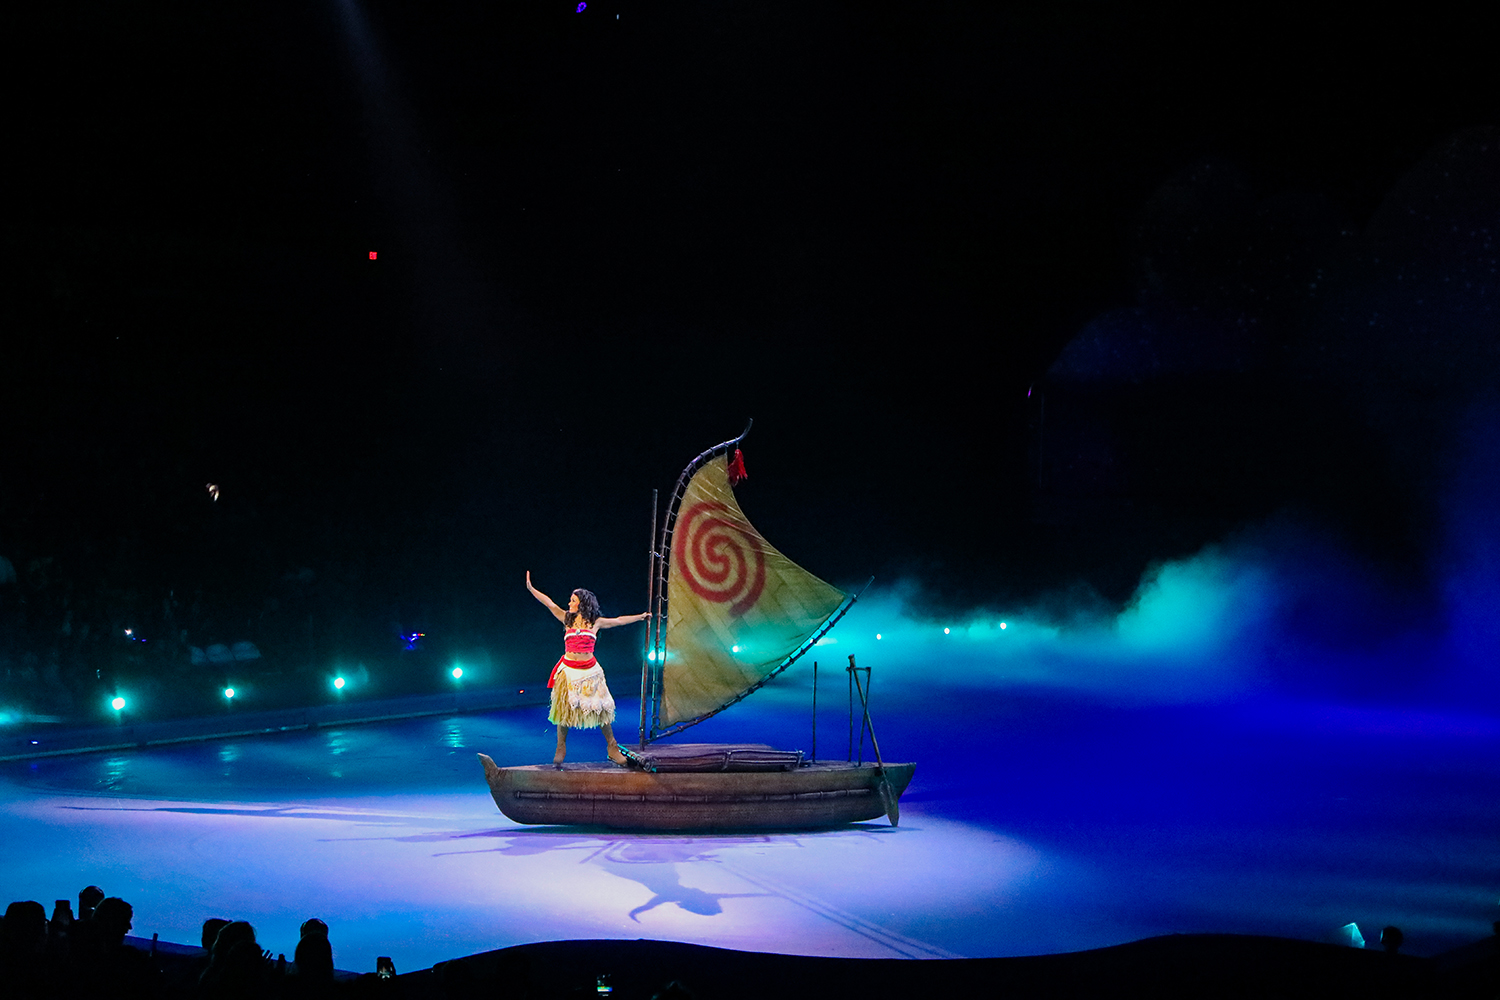 Disney on Ice Review: Is it worth it?